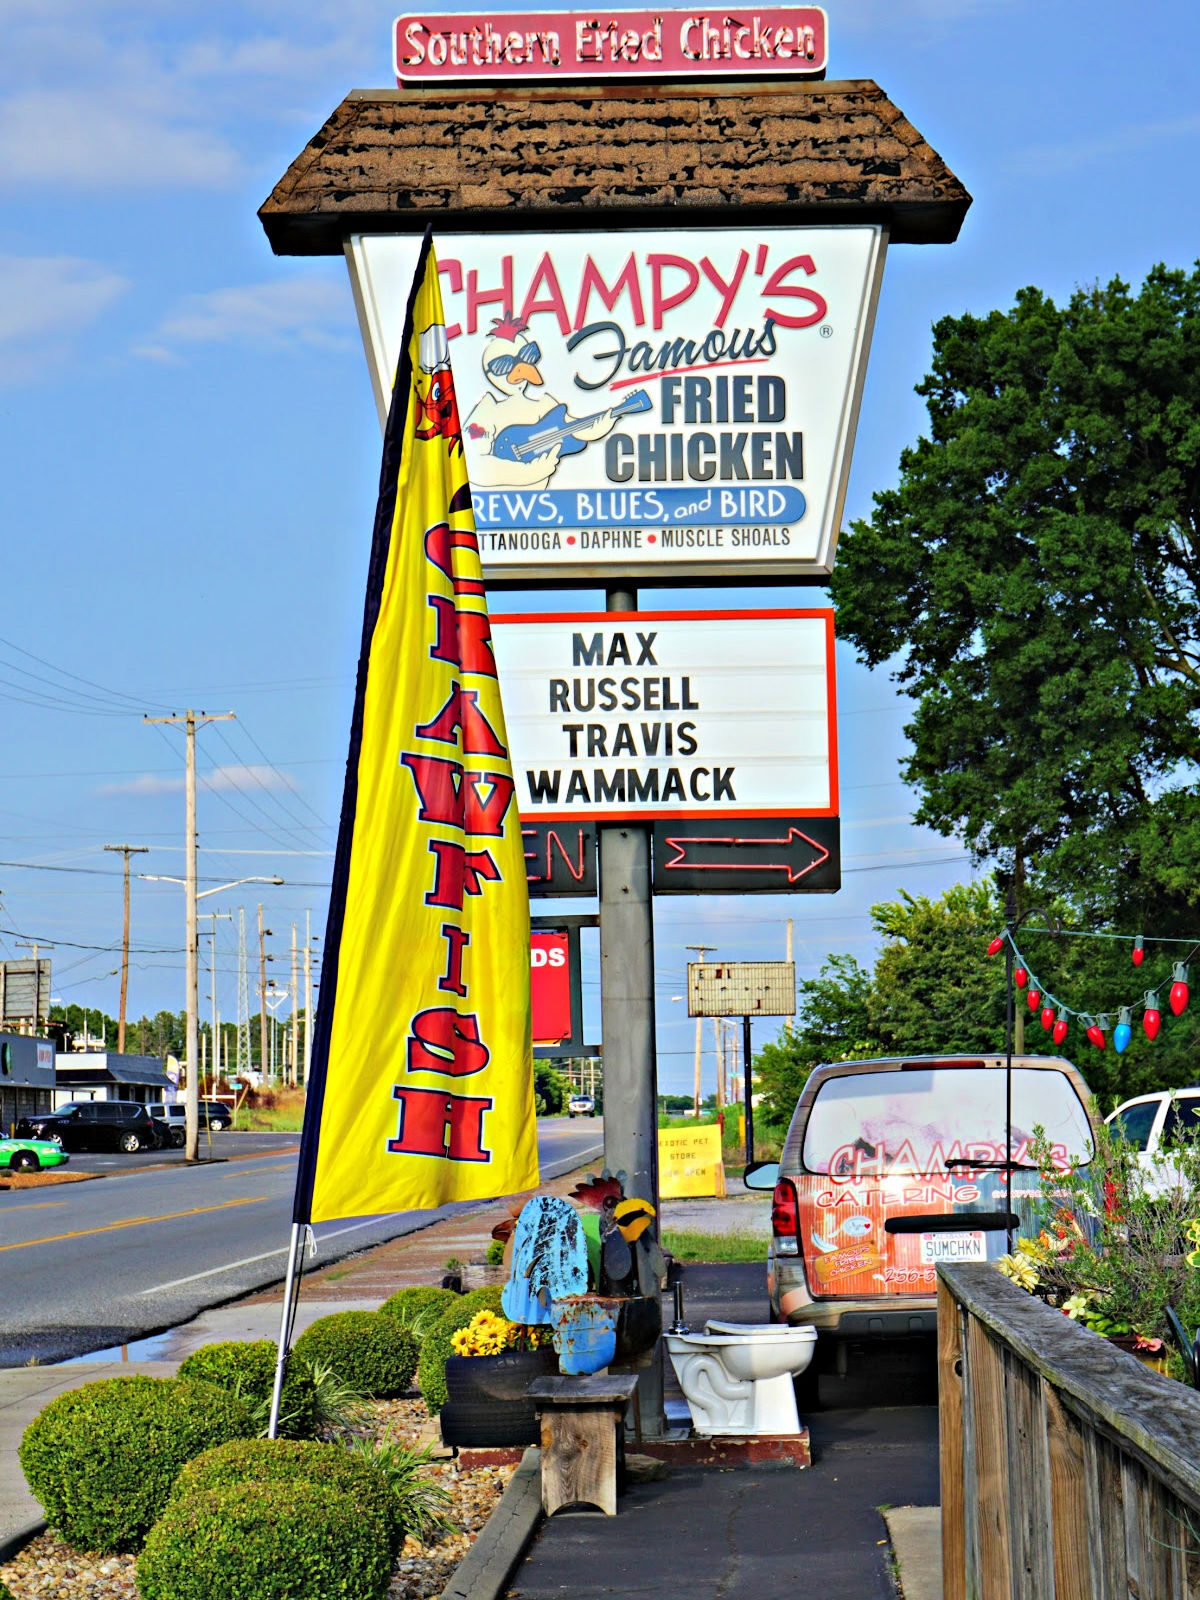 Champy's Famous Fried Chicken, Brews, Blues, and Bird sign.